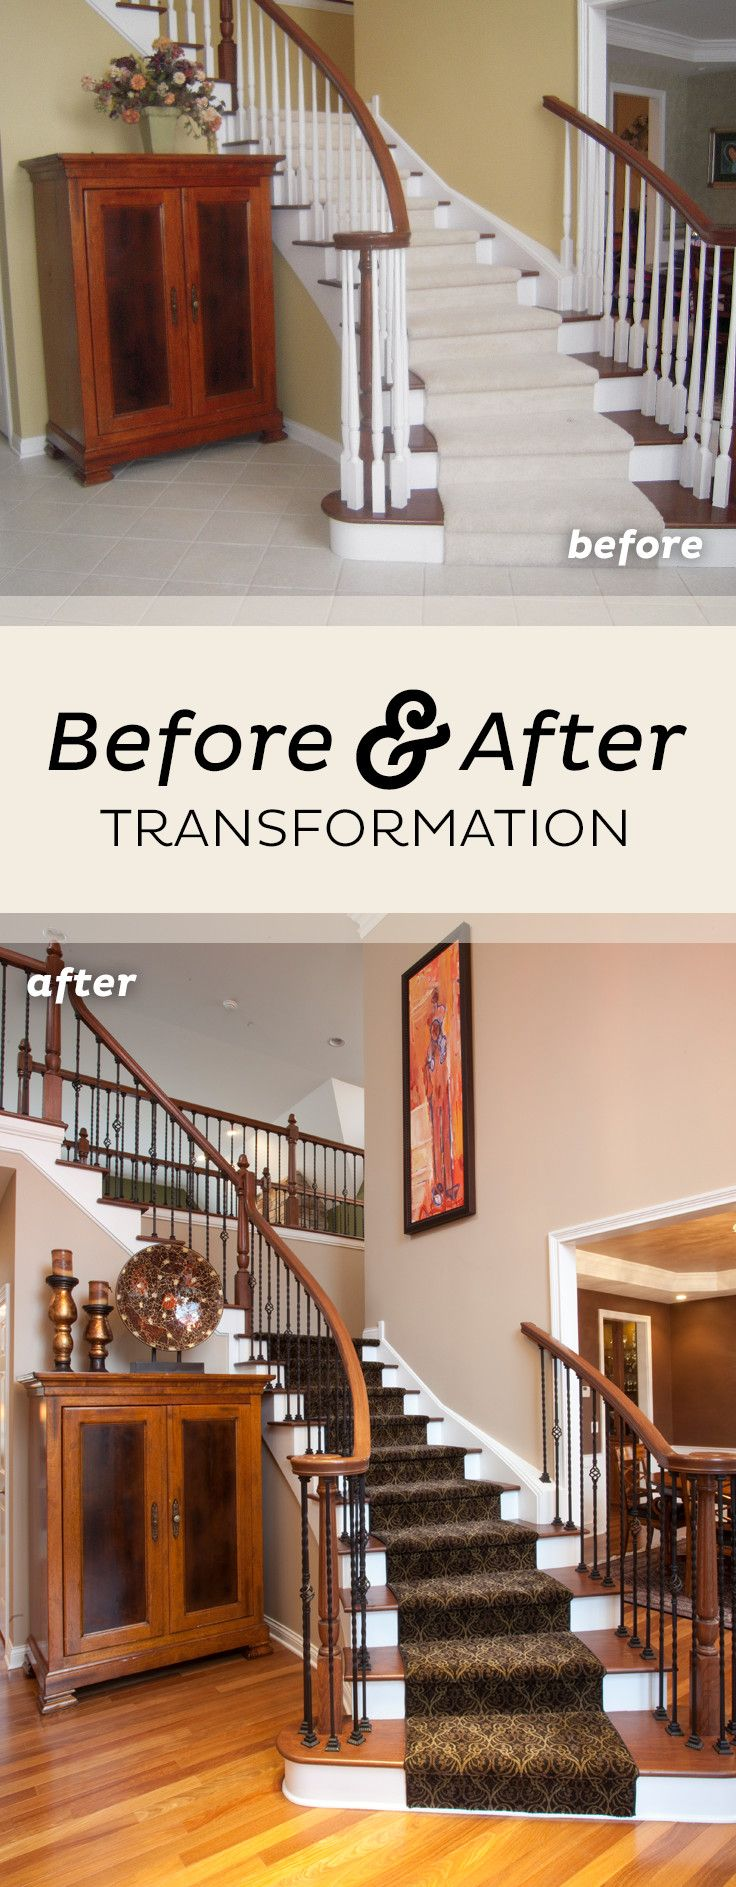 Dream Home Renovation Project by   Home renovation, House styles, Home remodeling